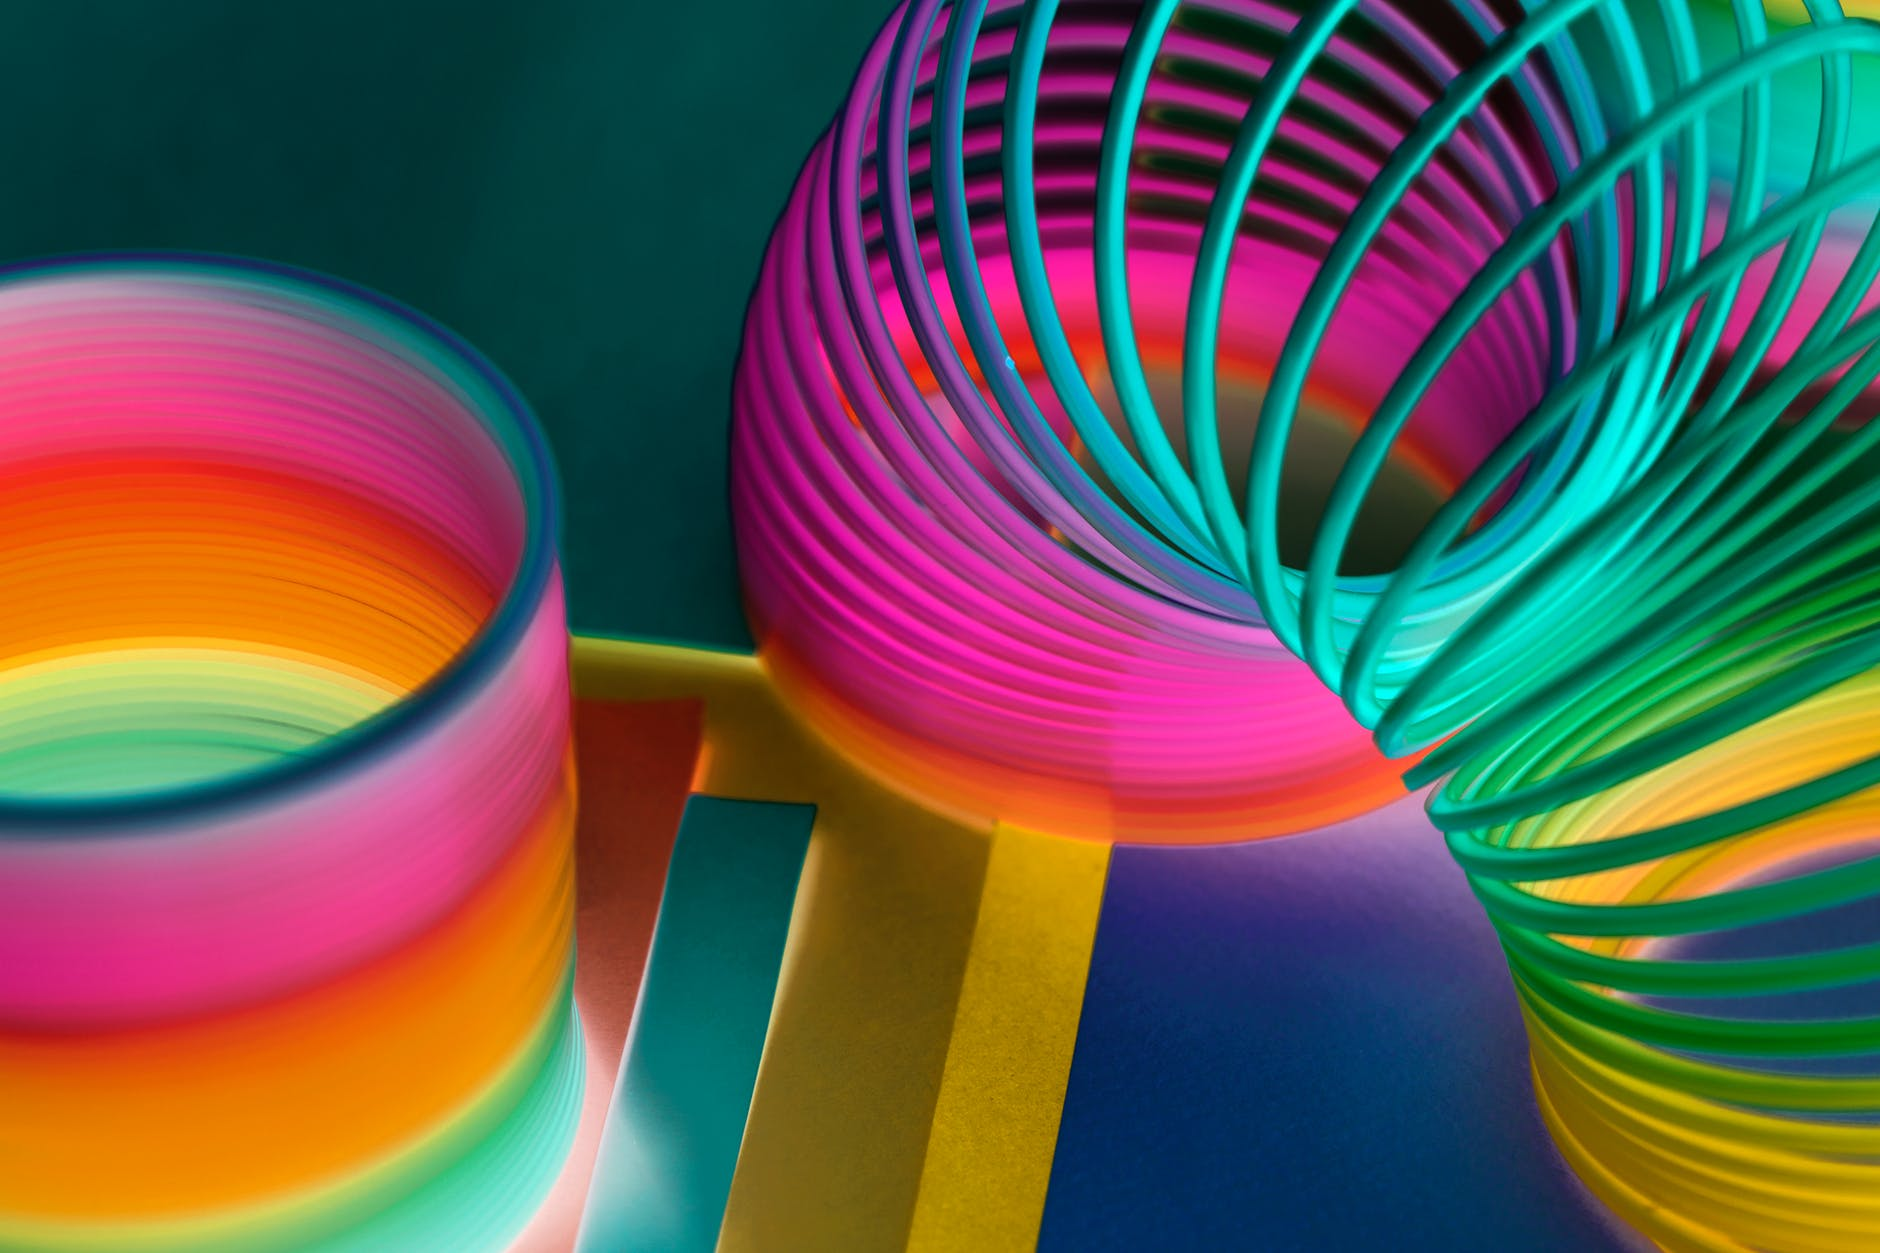 multicolored plastic slinky toy in close up photography